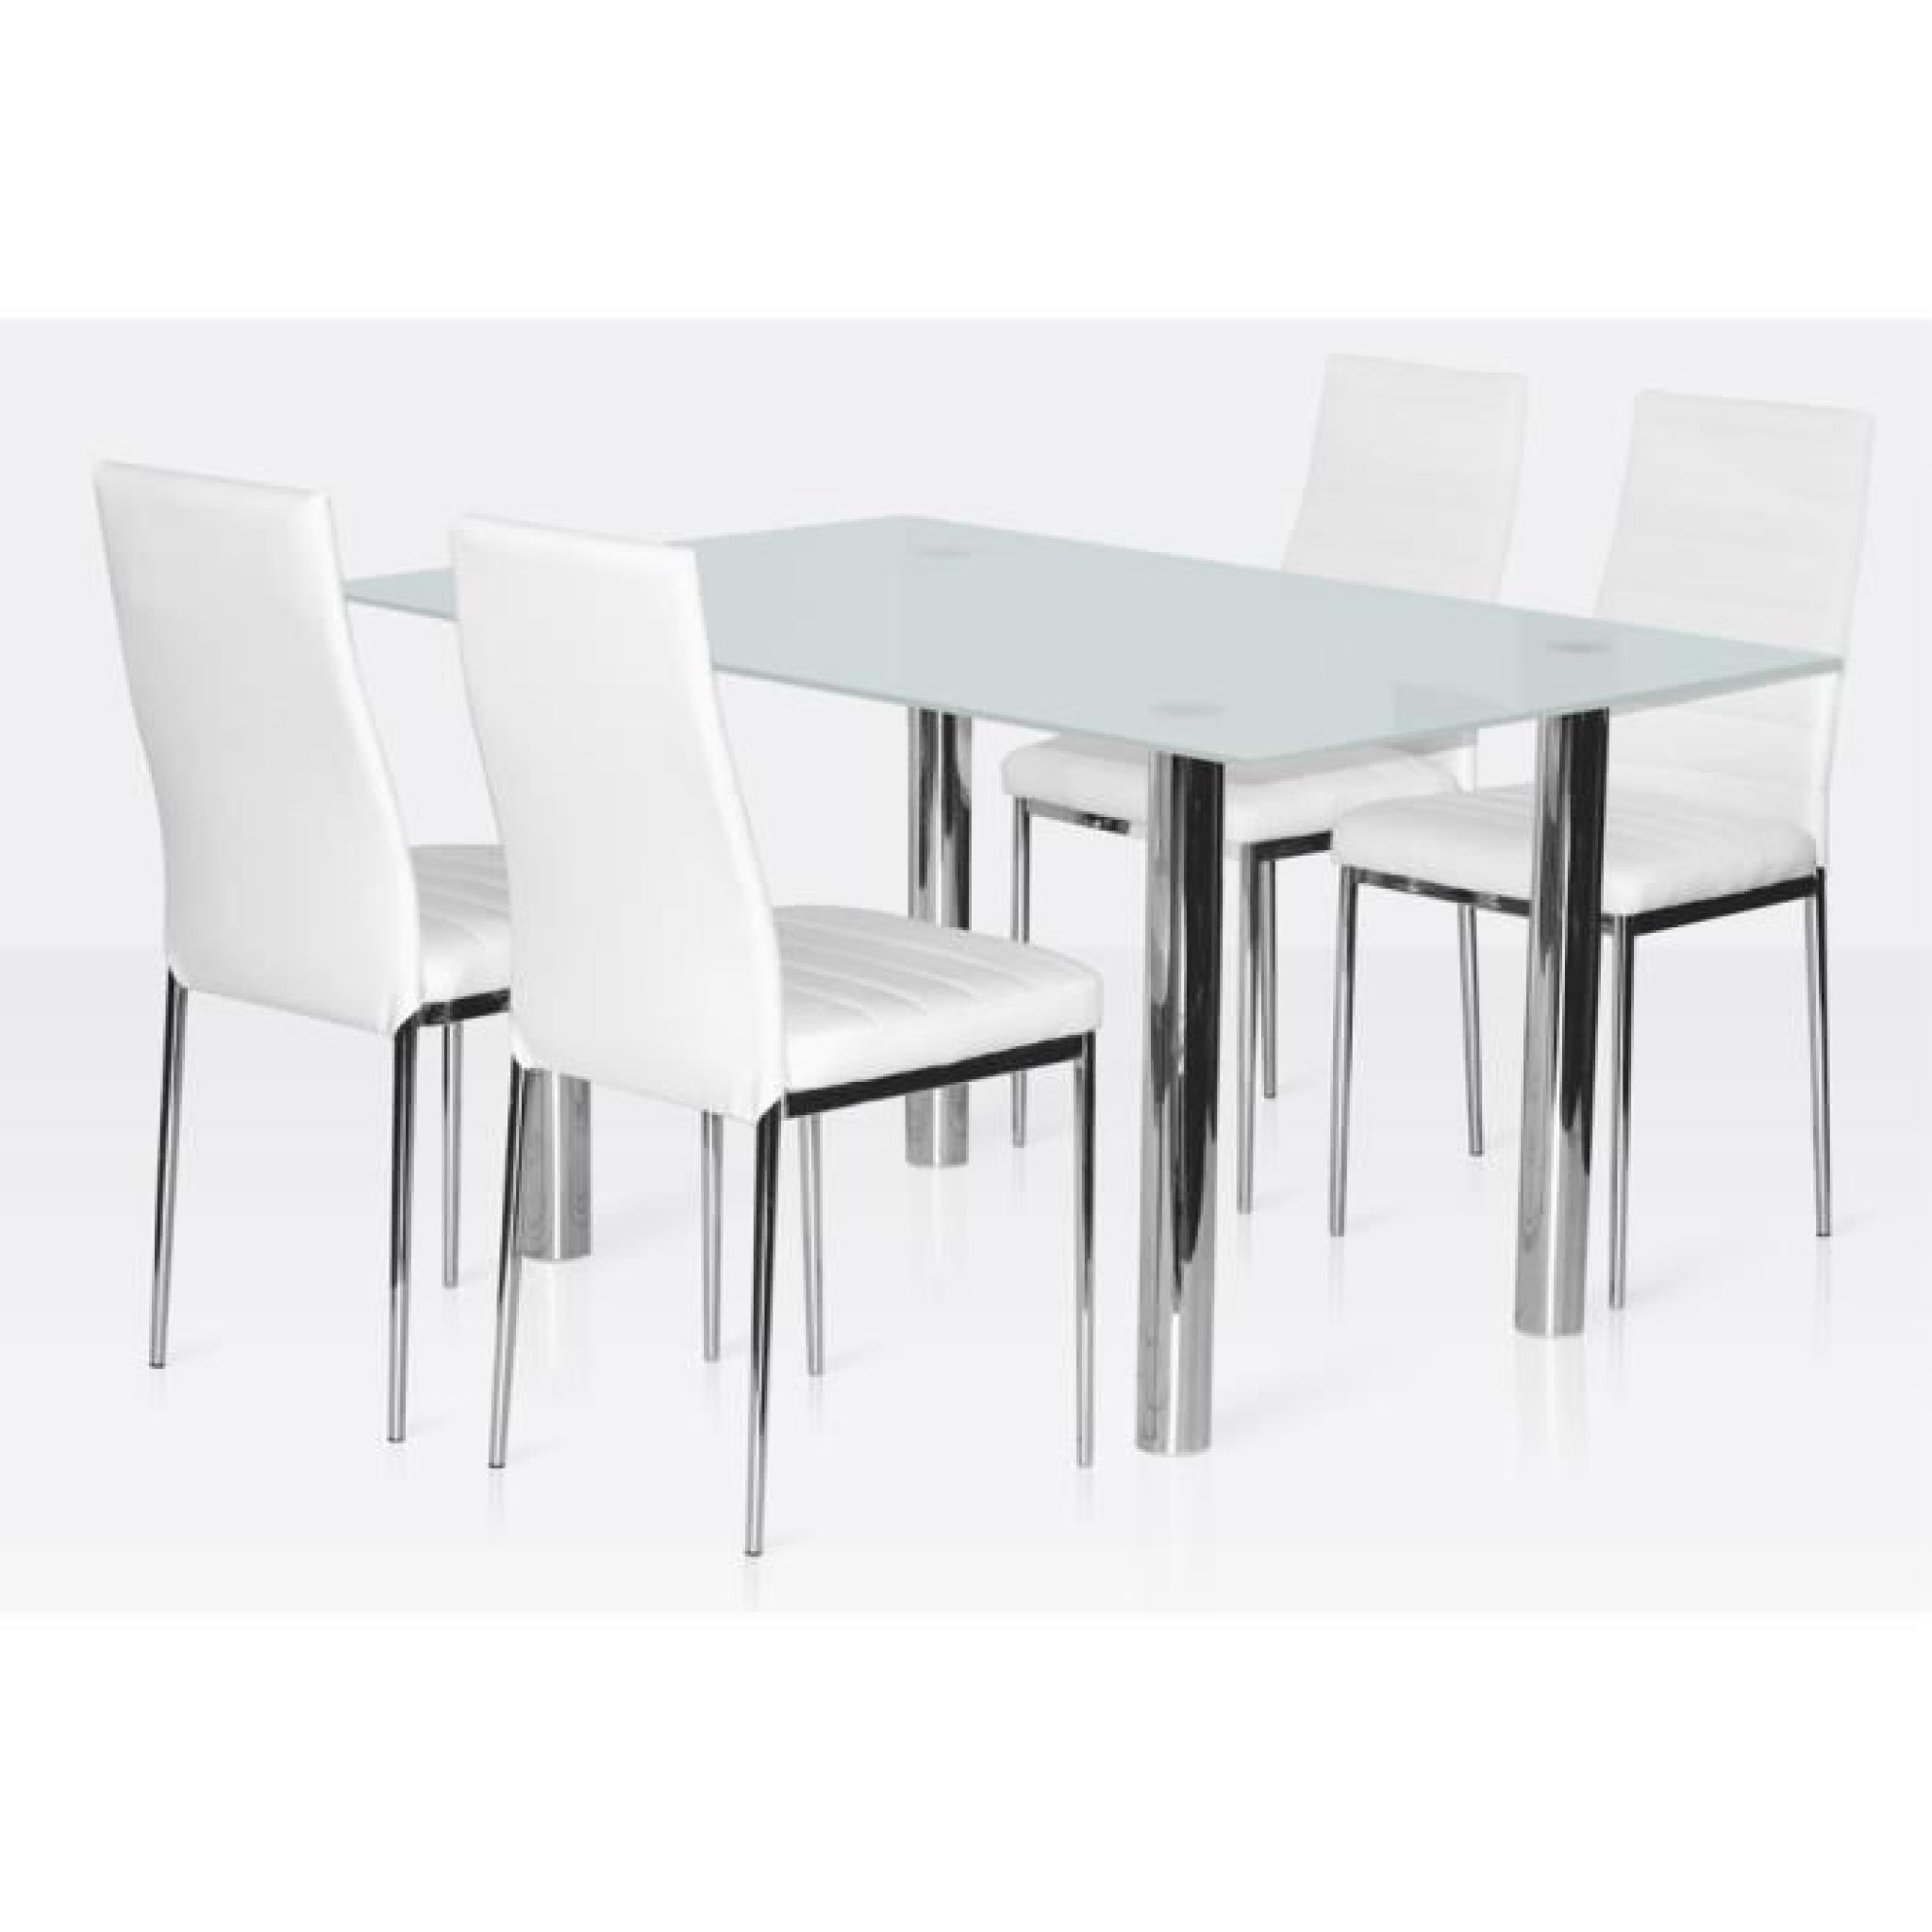 Table a manger chaises pas cher astonishing picture of for Table et chaise encastrable pas cher